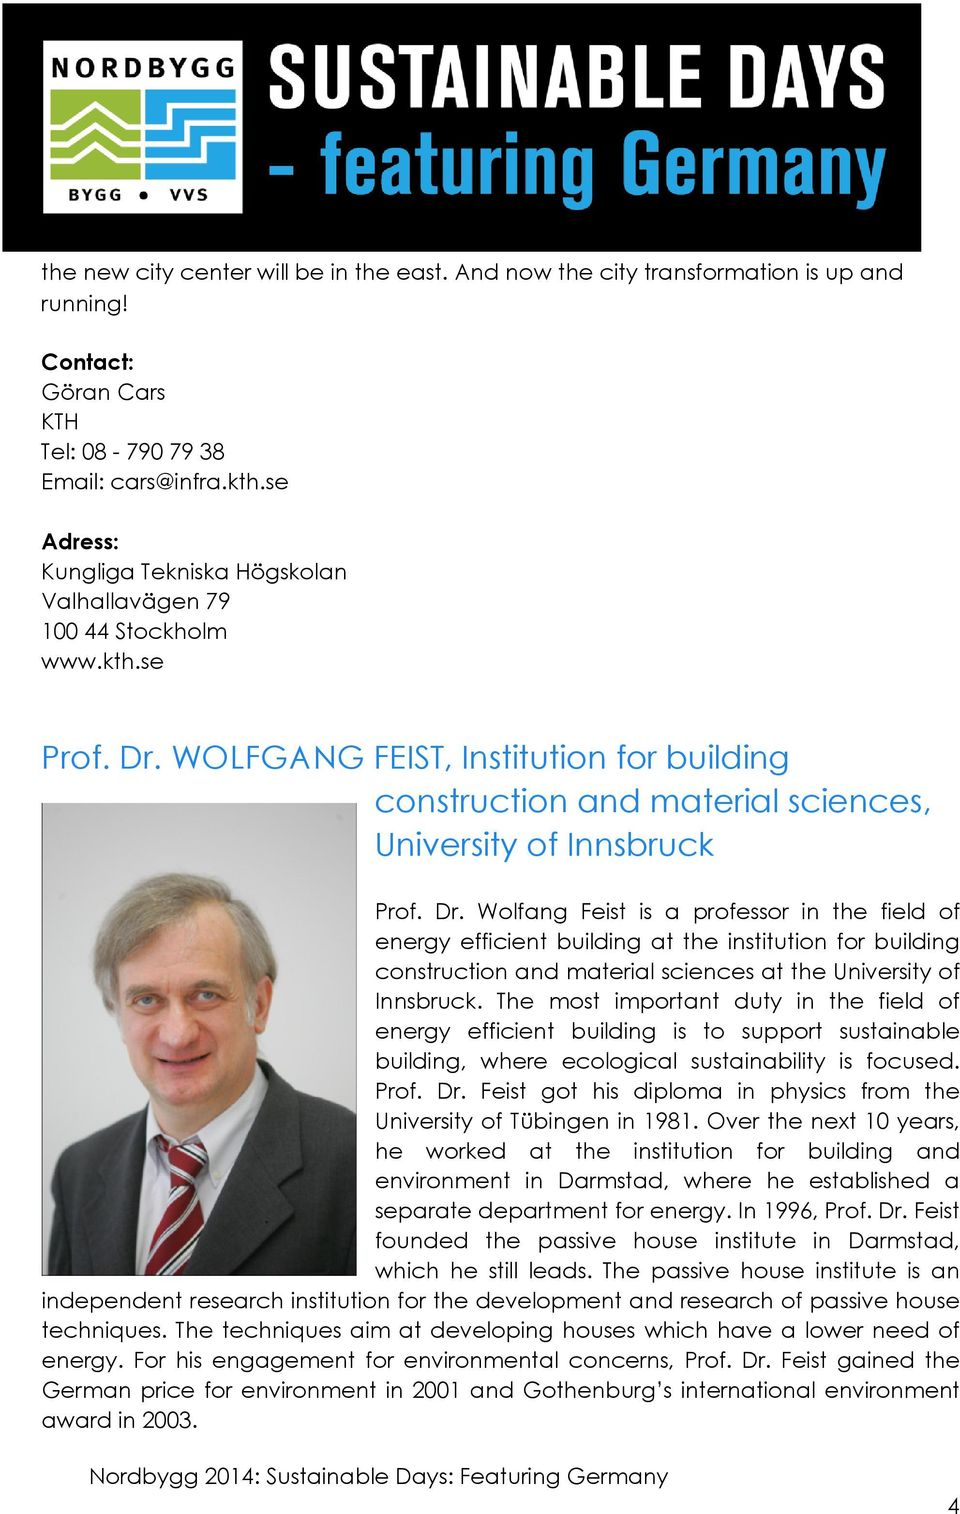 WOLFGANG FEIST, Institution for building construction and material sciences, University of Innsbruck Prof. Dr.